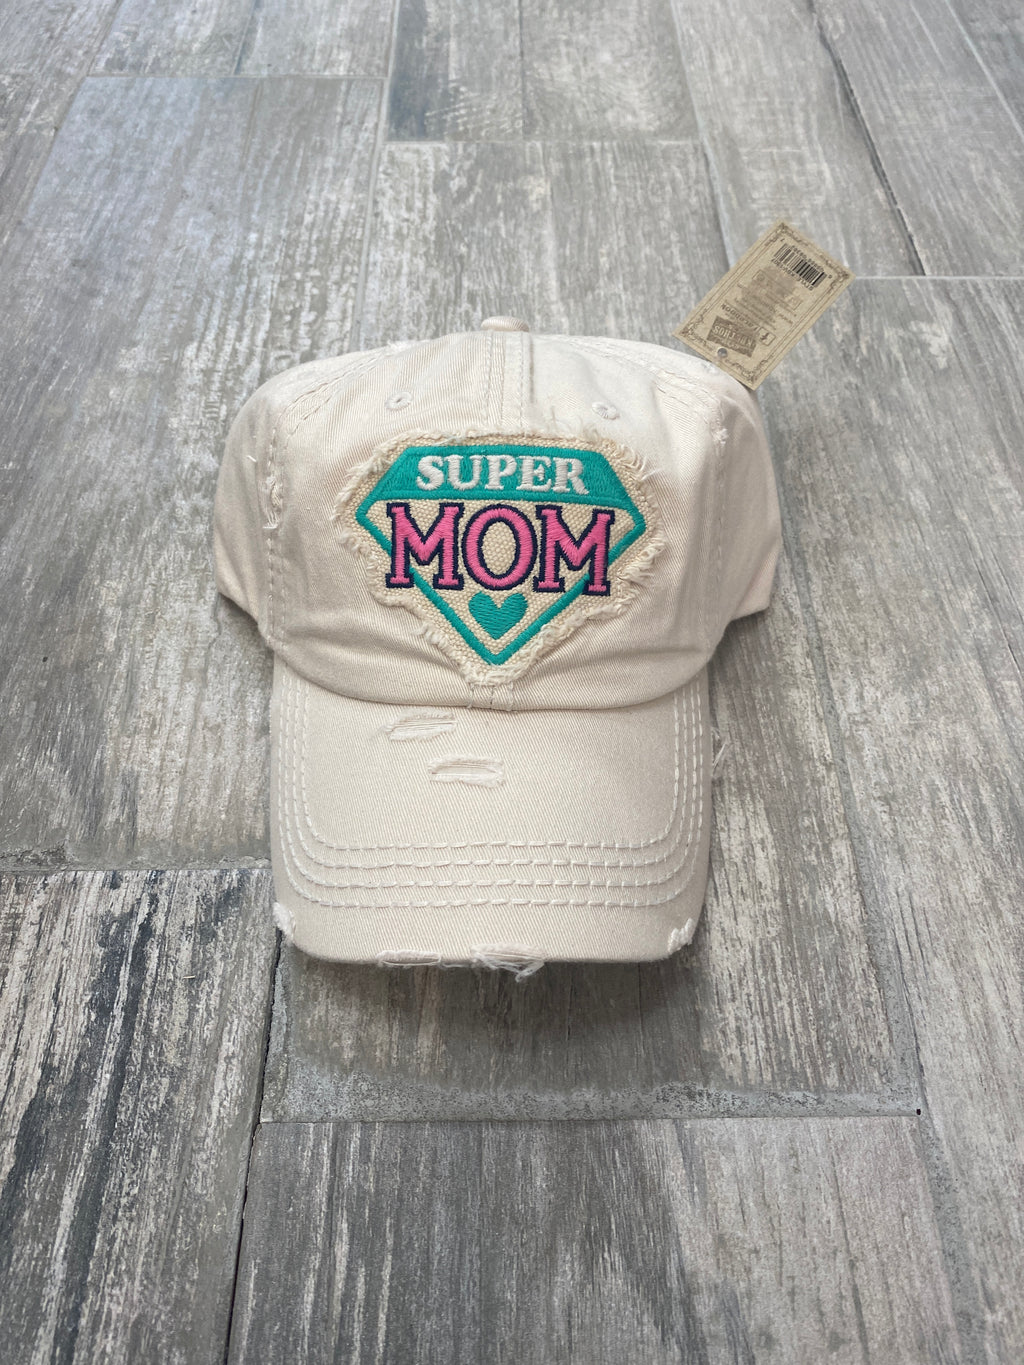 Ivory Super Mom Cap - Sissy Boutique